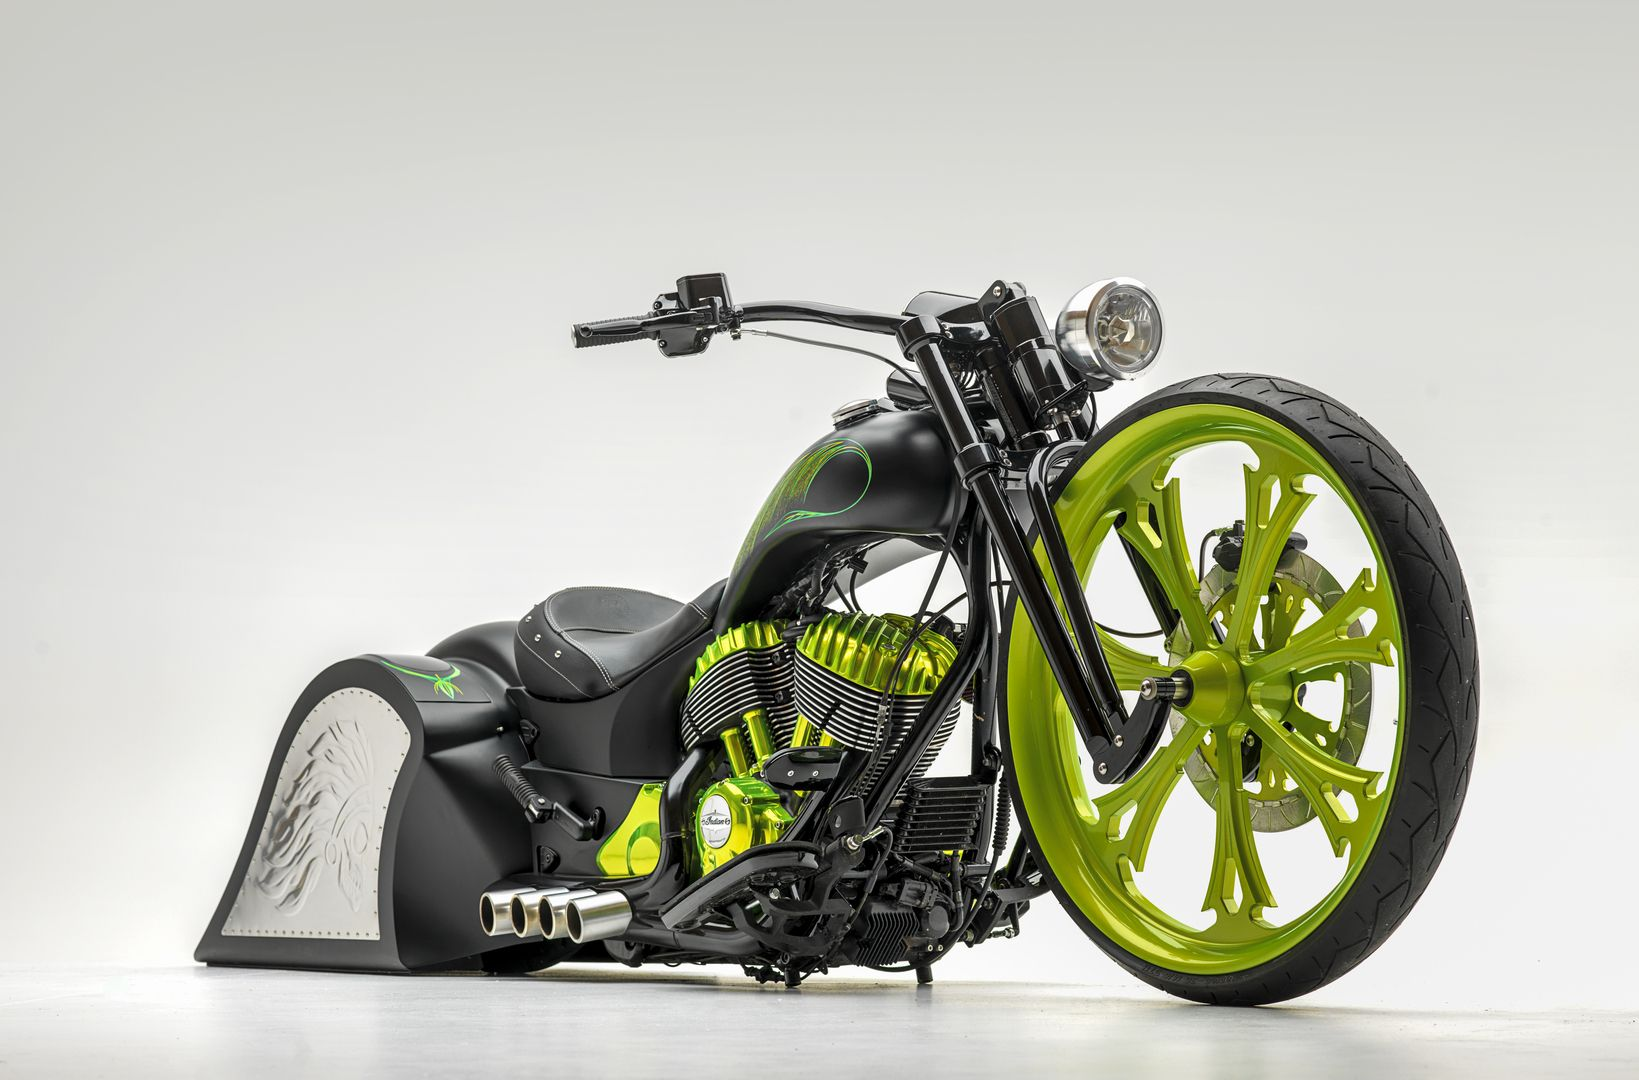 Vicbaggers Custom Victory Motorcycle Parts And Accessories